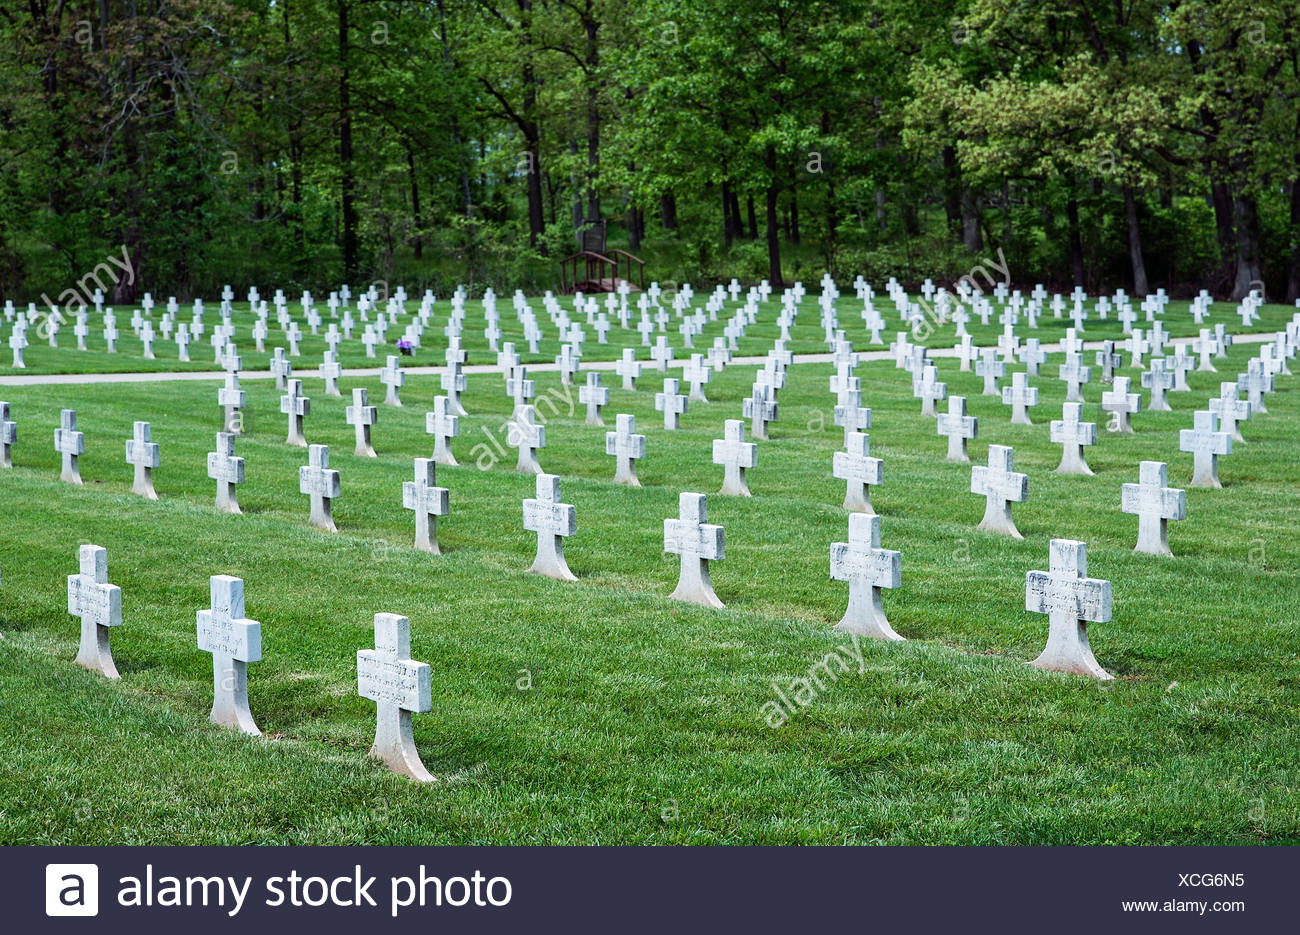 Cemetery for Daughters of Charity religious order of nuns, Elizabeth Seton National Shrine, Emmitsburg, Maryland, USA - Stock Image